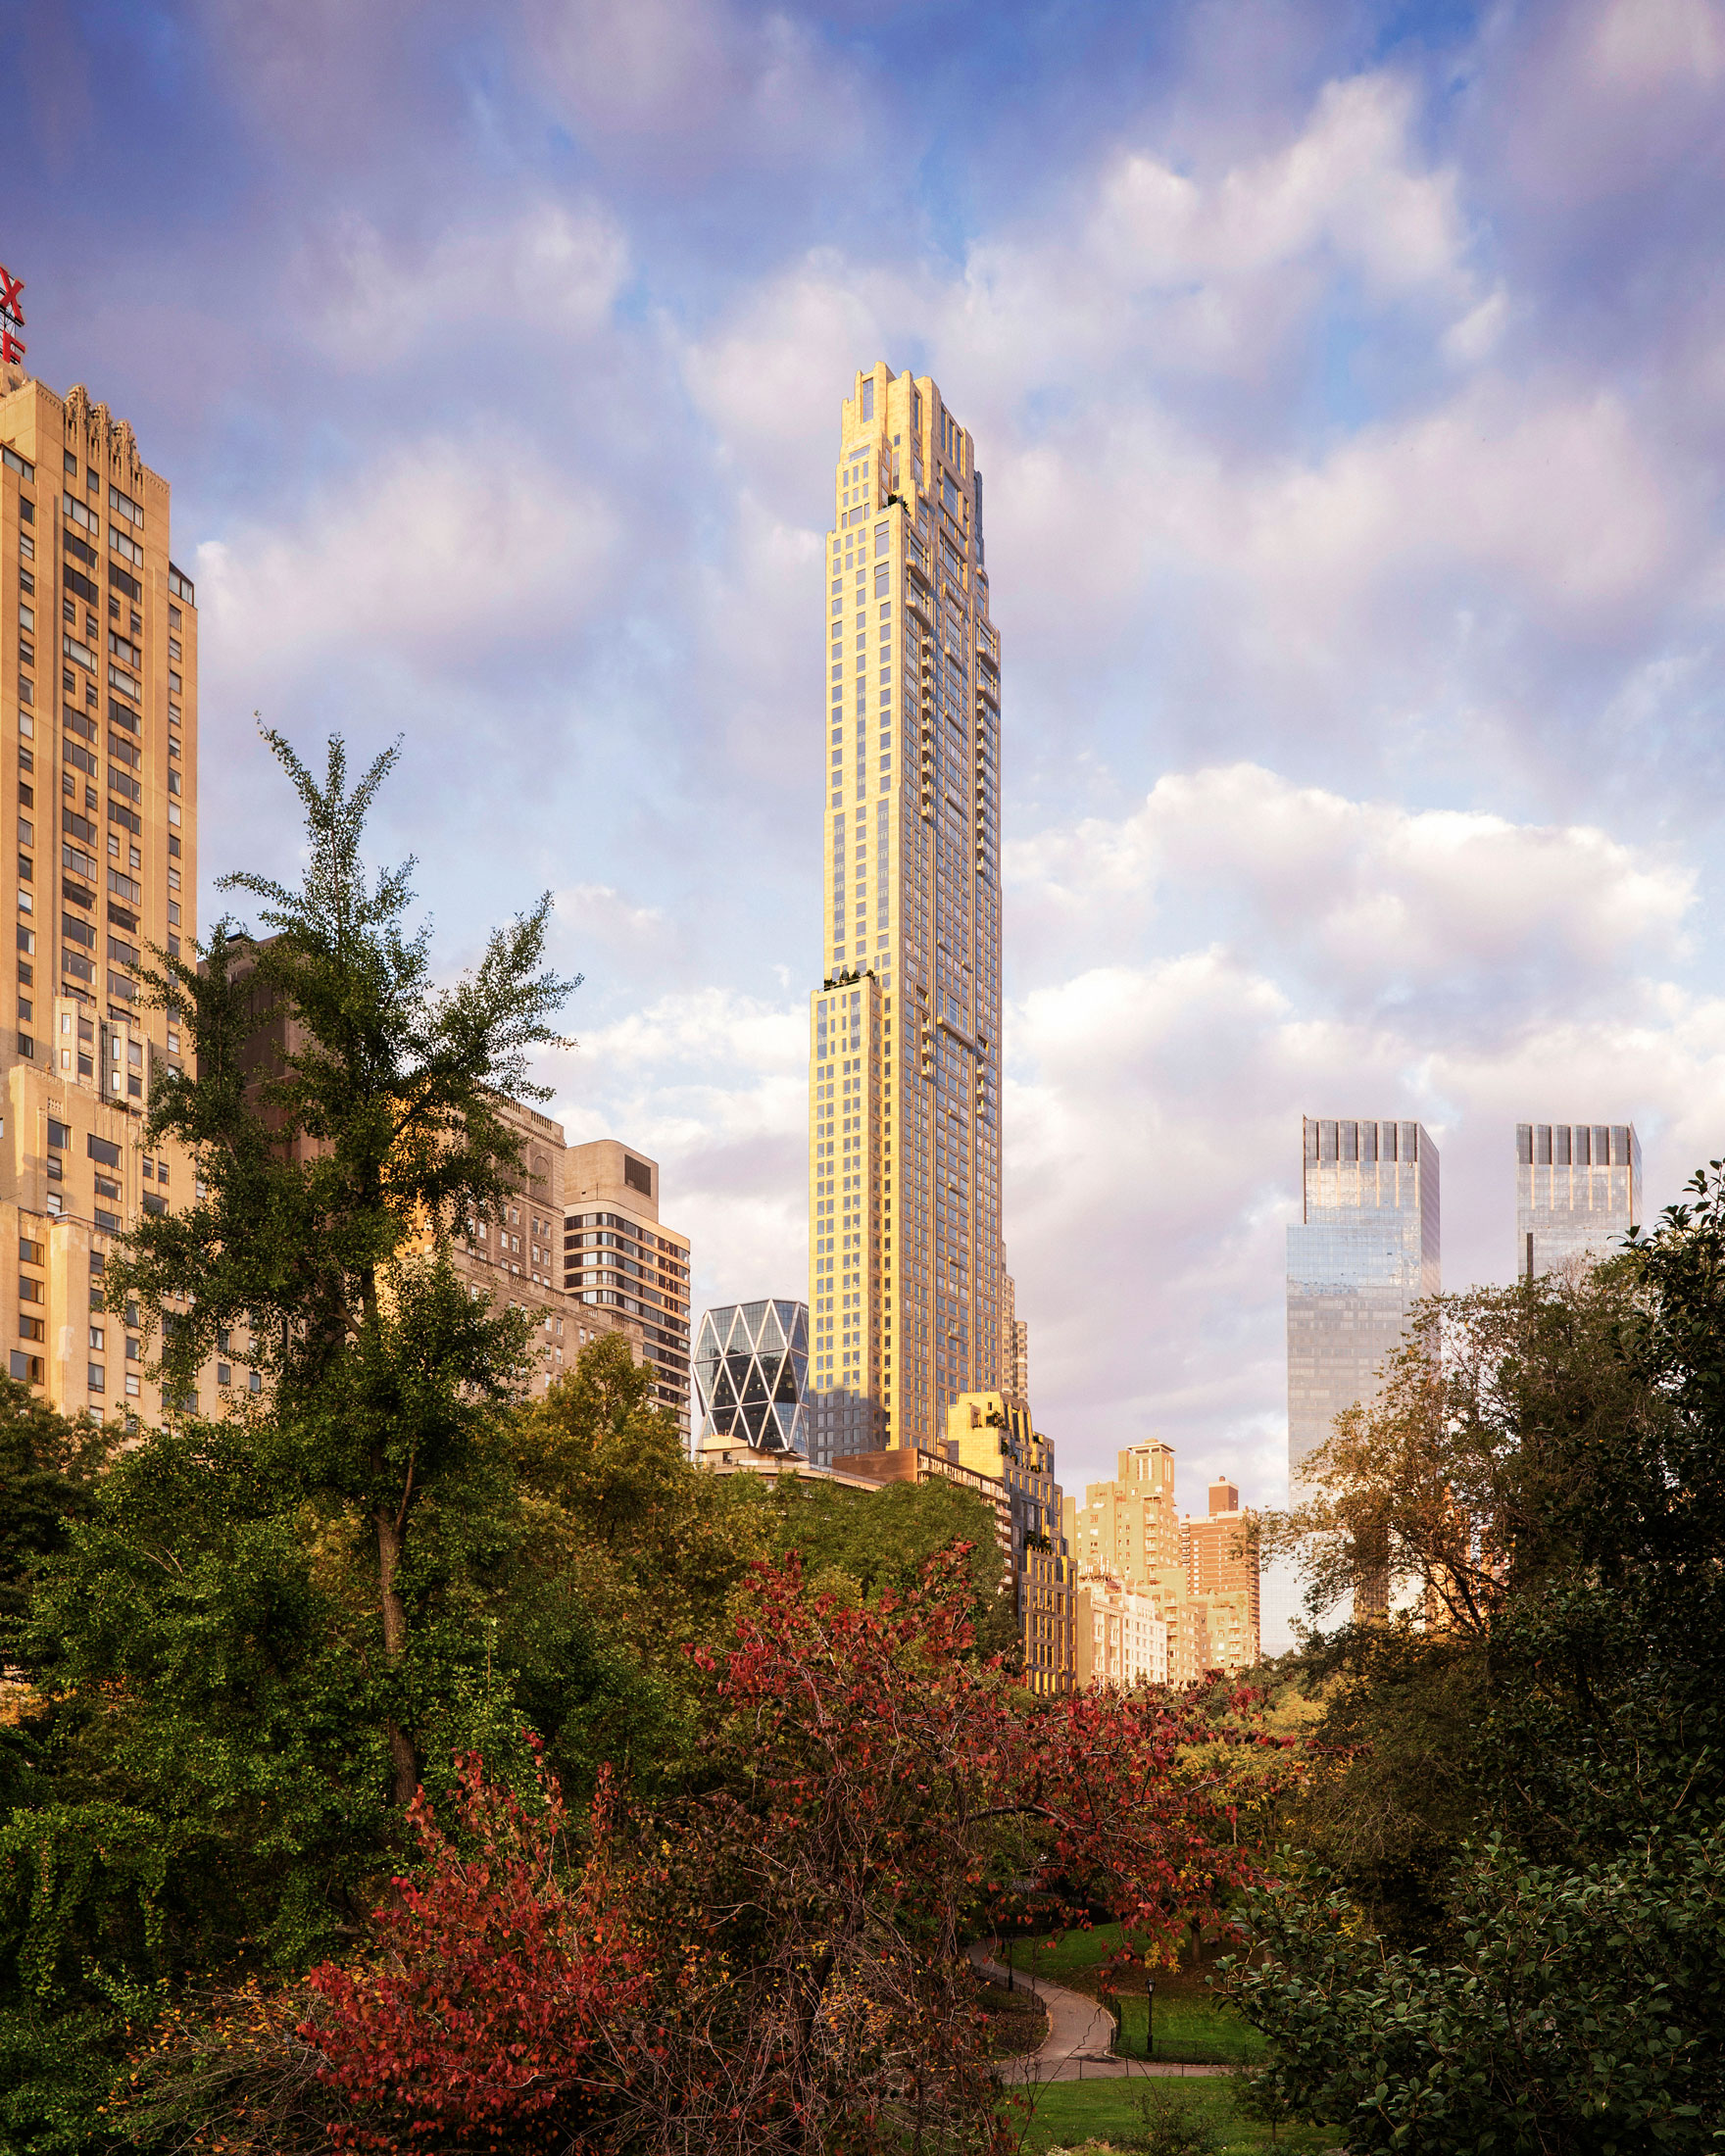 Architectural Rendering of the exterior of the 220 Central Park South project located in Midtown, New York City